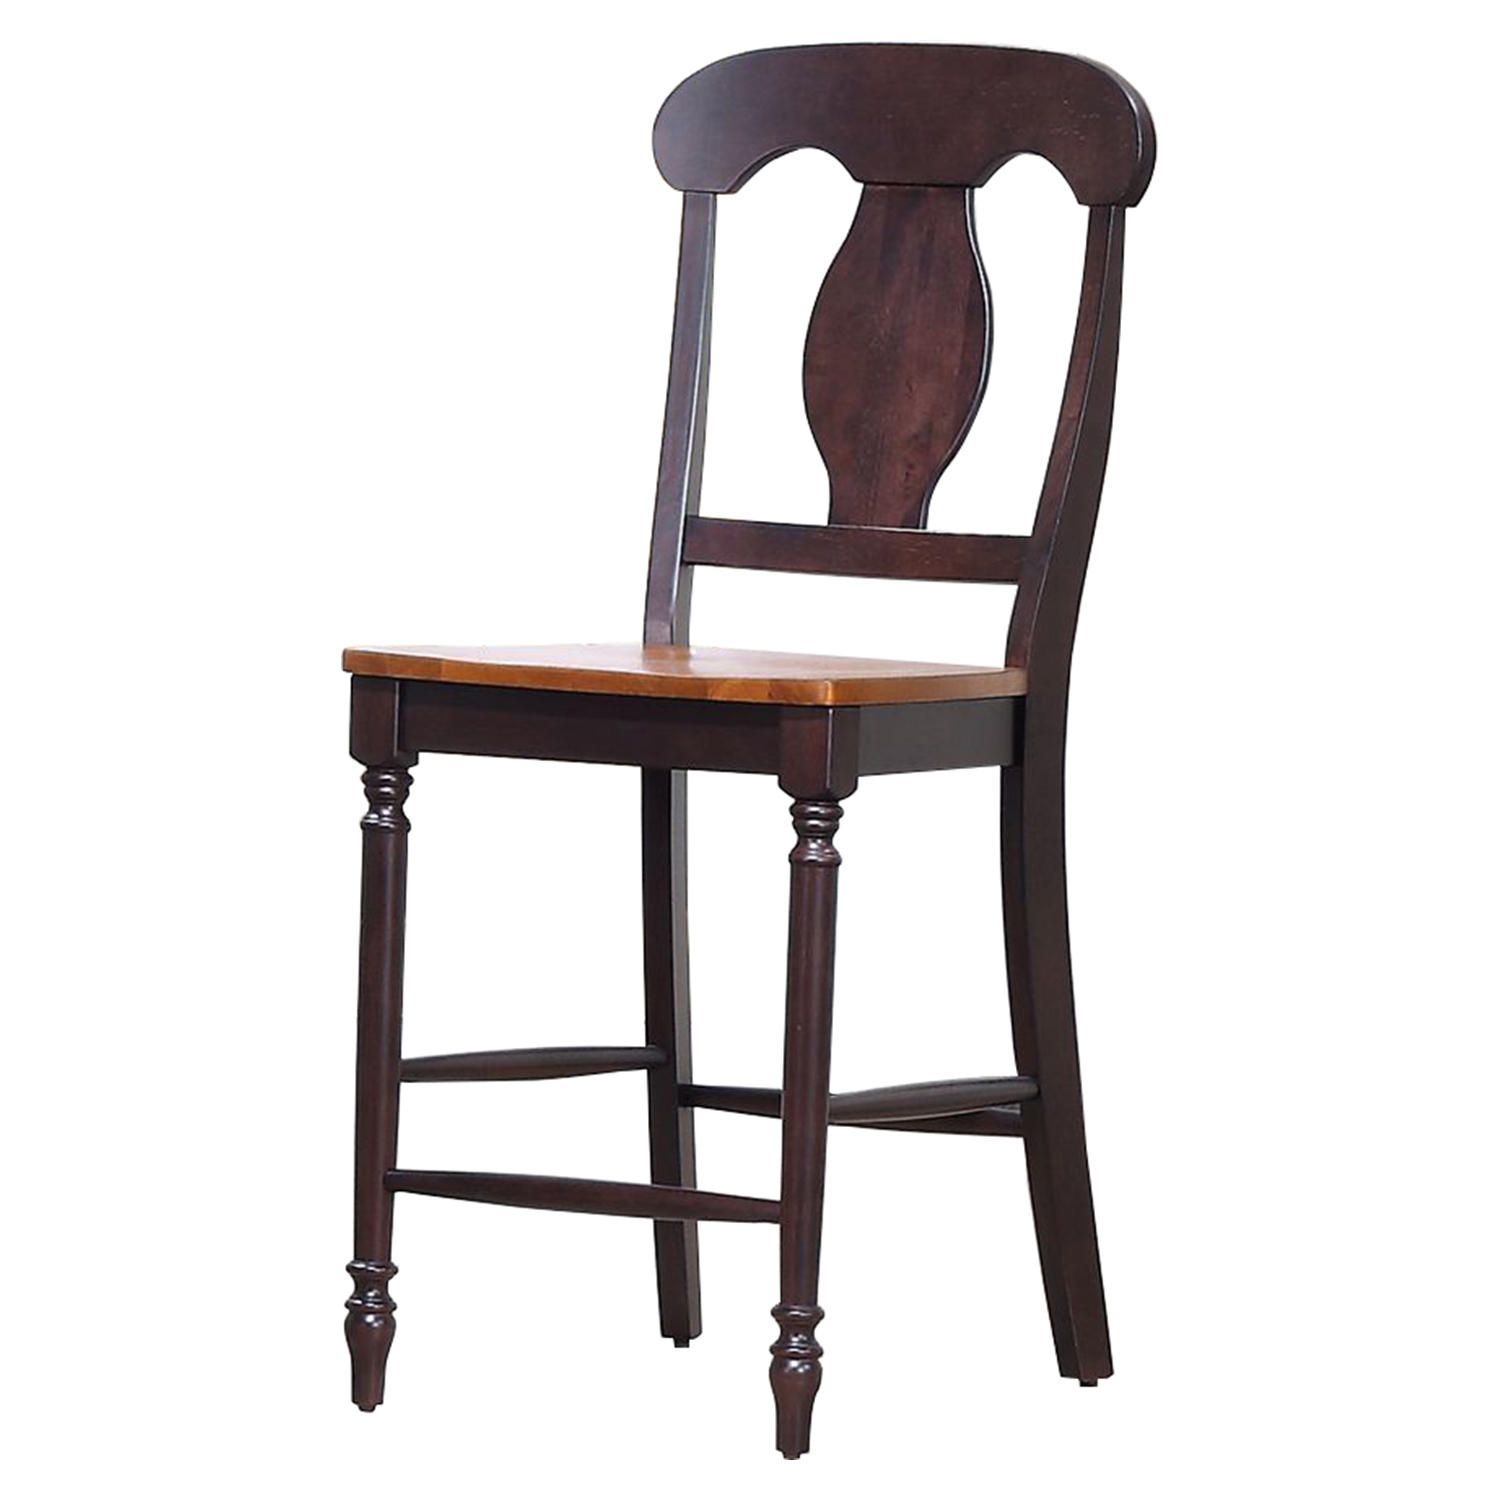 Napoleon Back 24quot Counter Stool Whiskey and Mocha DCG  : stc53 wy ma from www.dcgstores.com size 1000 x 1000 jpeg 156kB